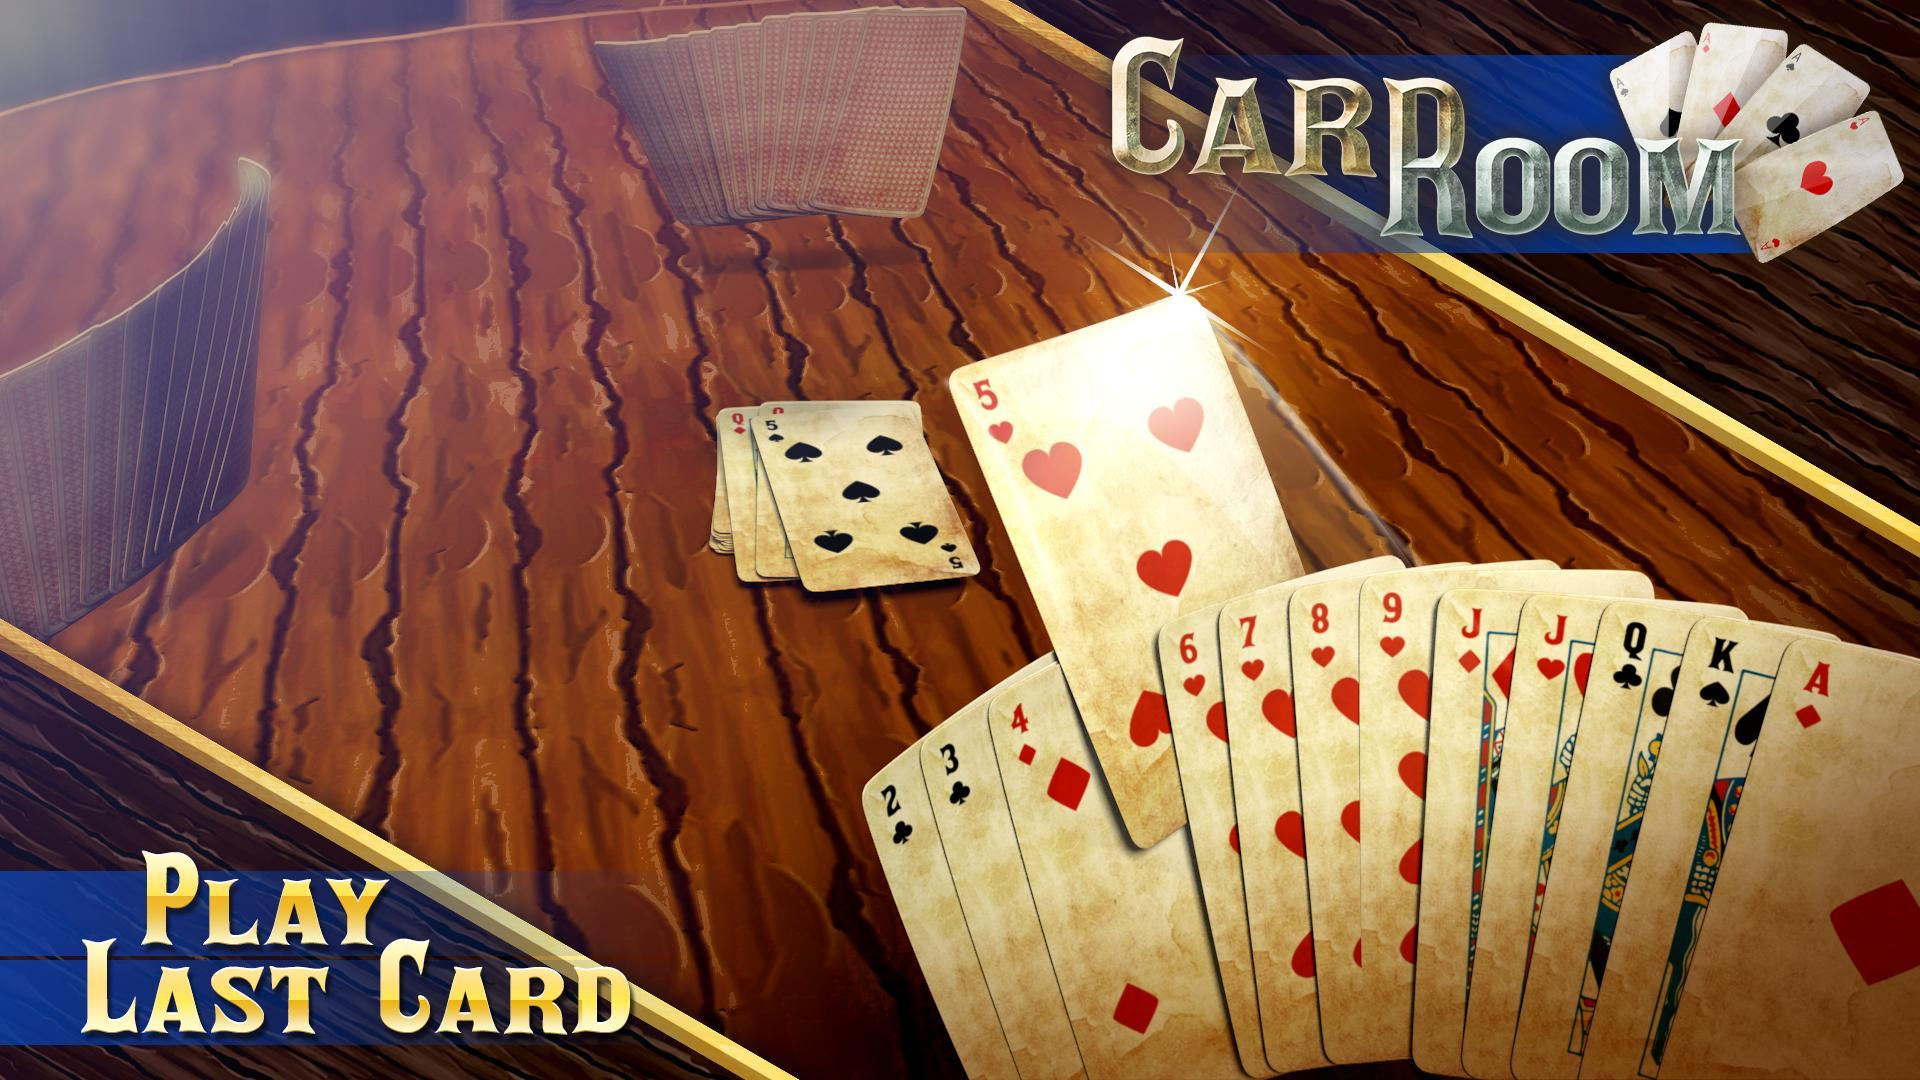 Card Room Deuces & Last Card, Playing Cards 1.2.3 Screenshot 7